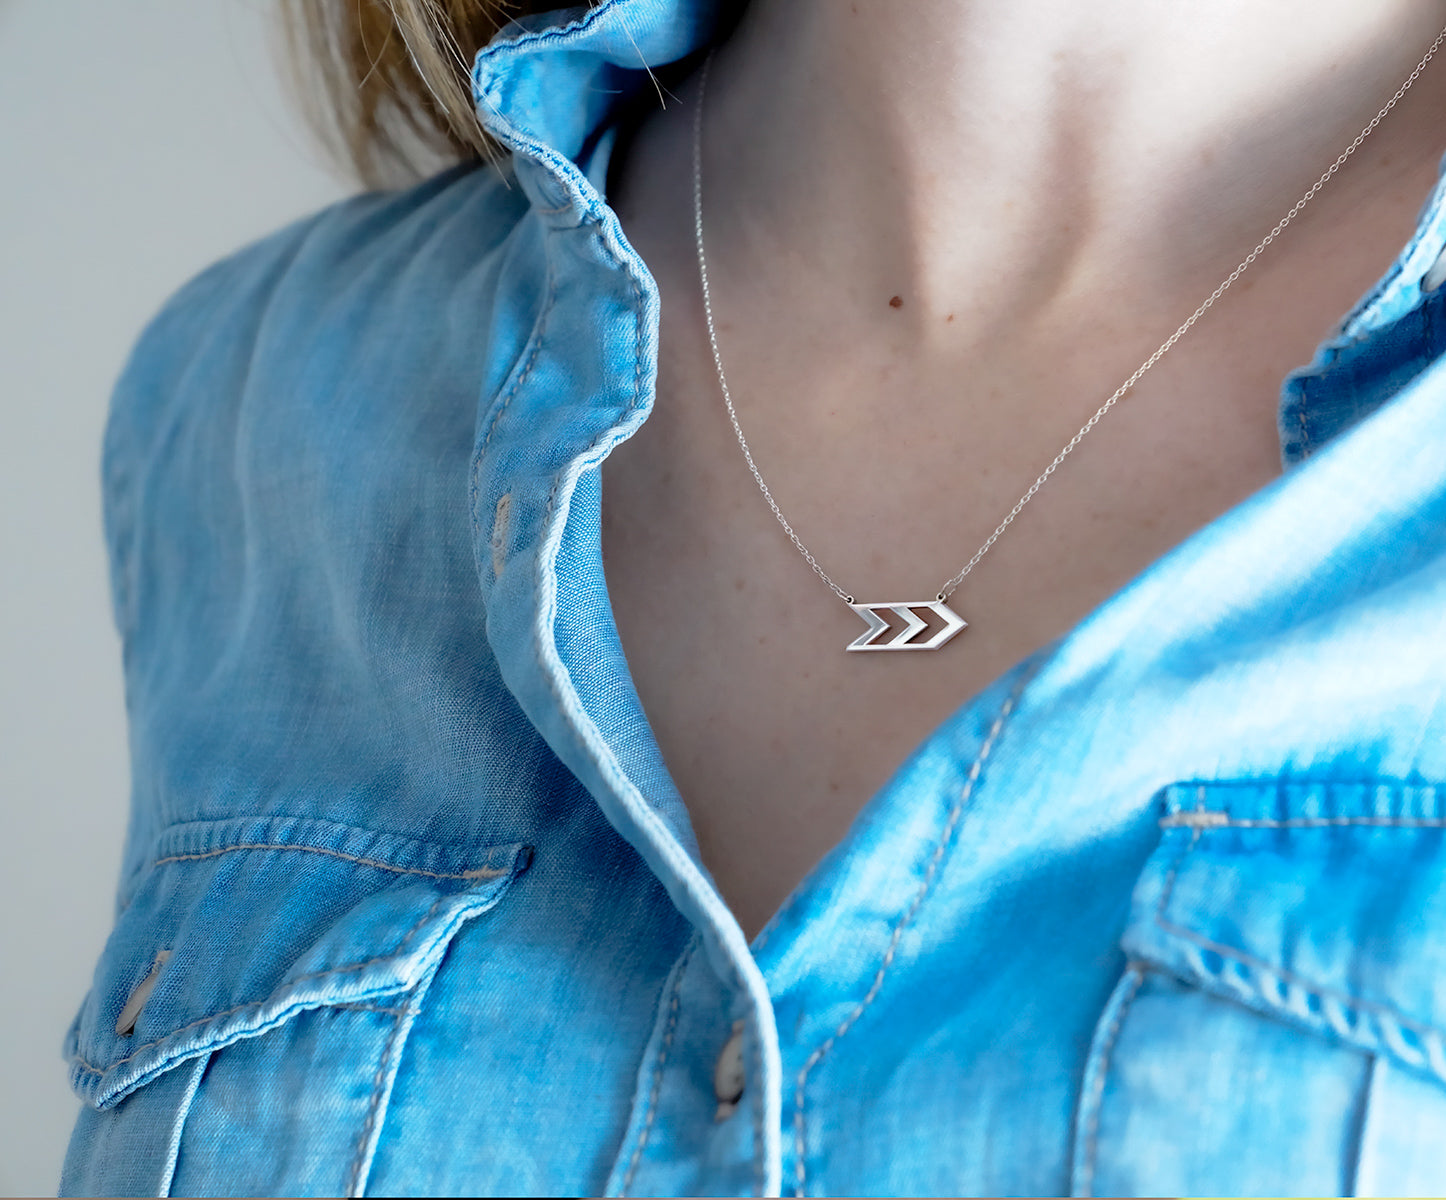 Three Arrows Necklace / in stock